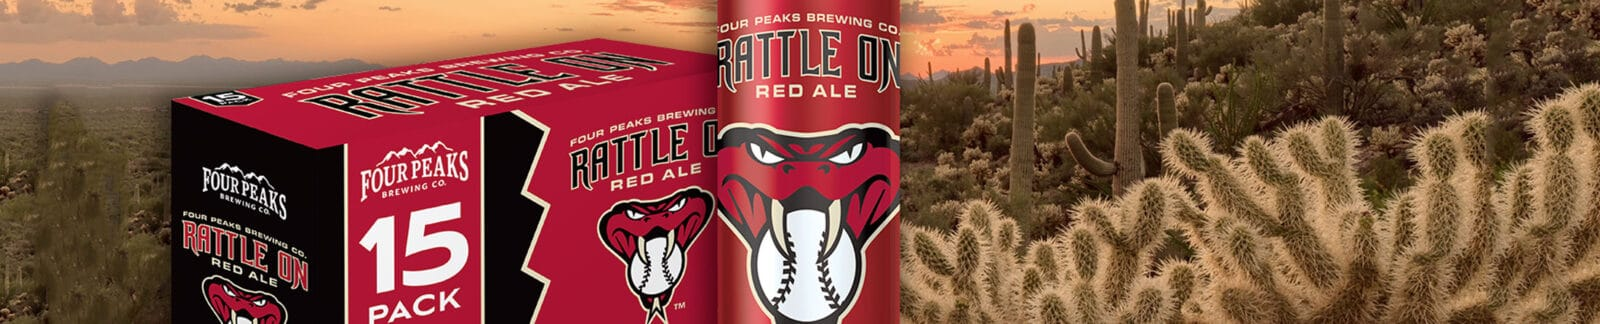 Rattle On Red Ale by Four Peaks Brewing header